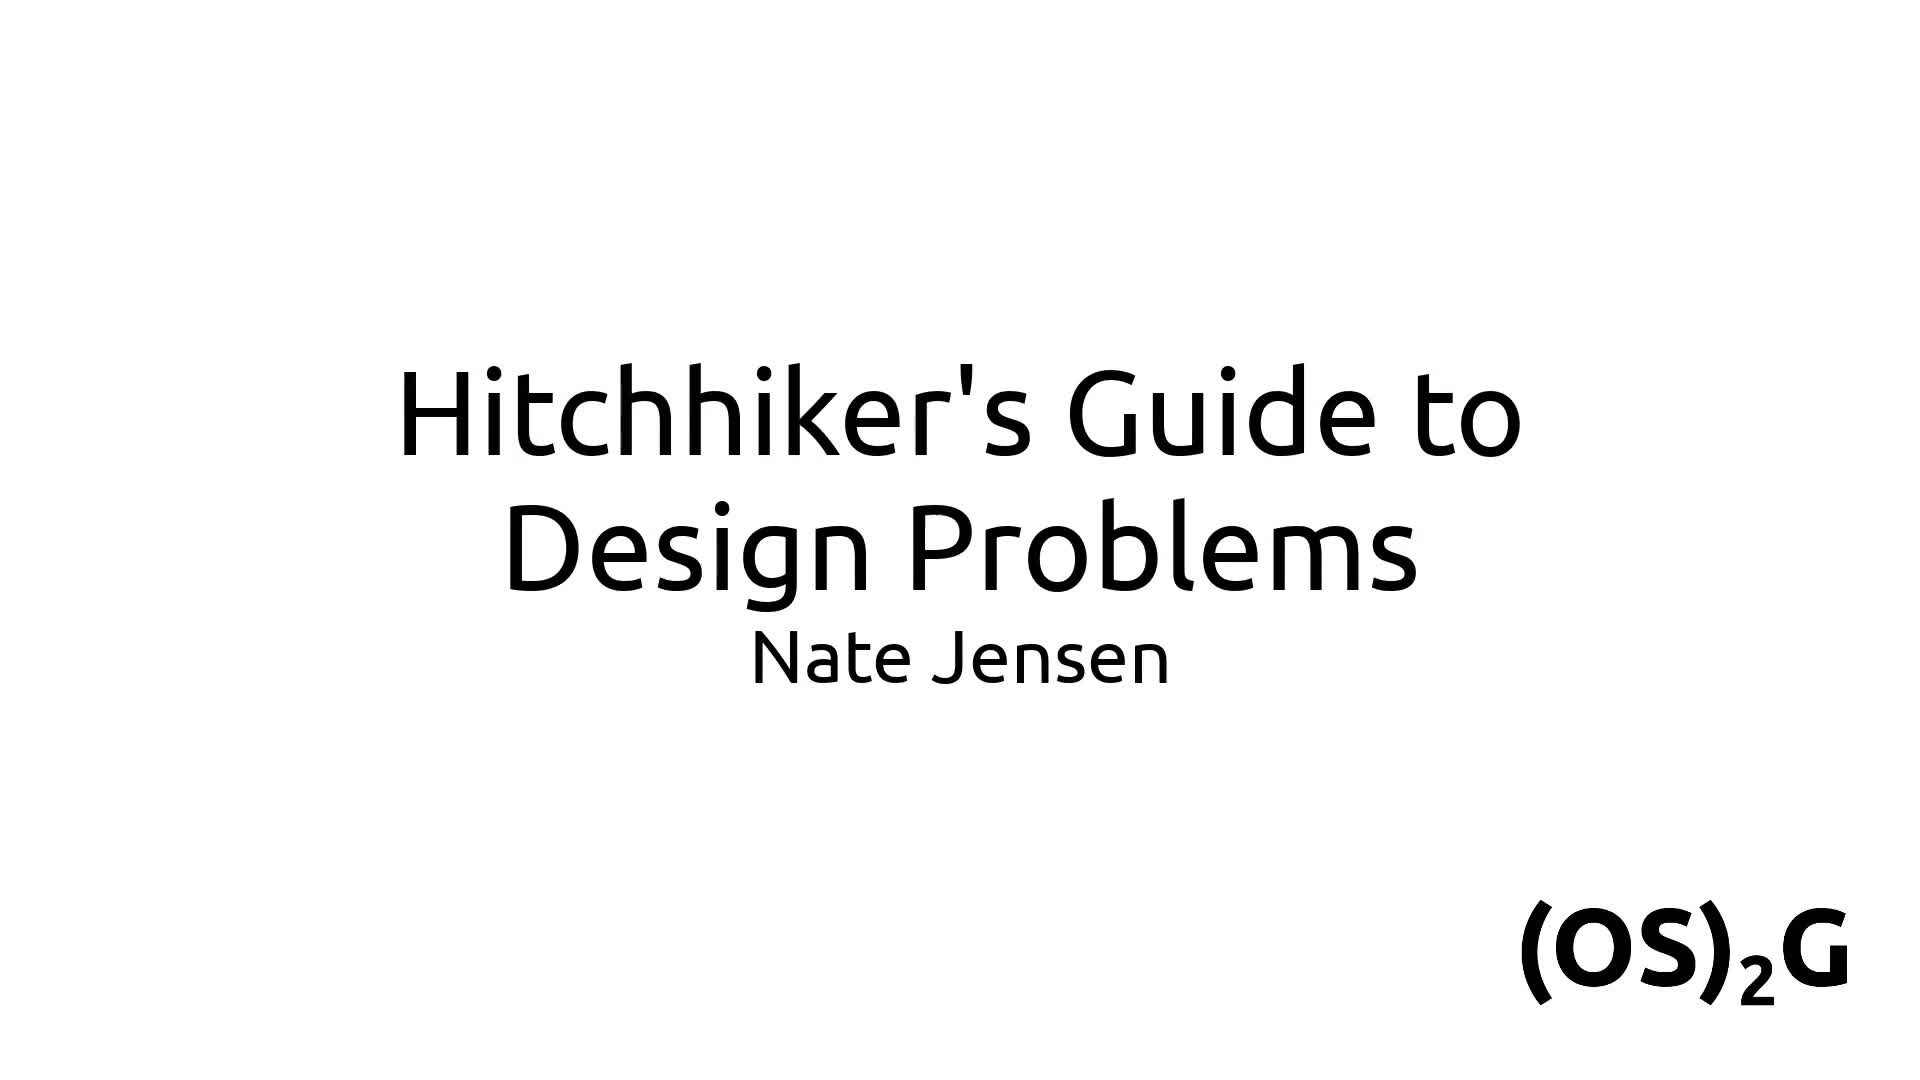 The Hitchhiker's Guide to Design Problems